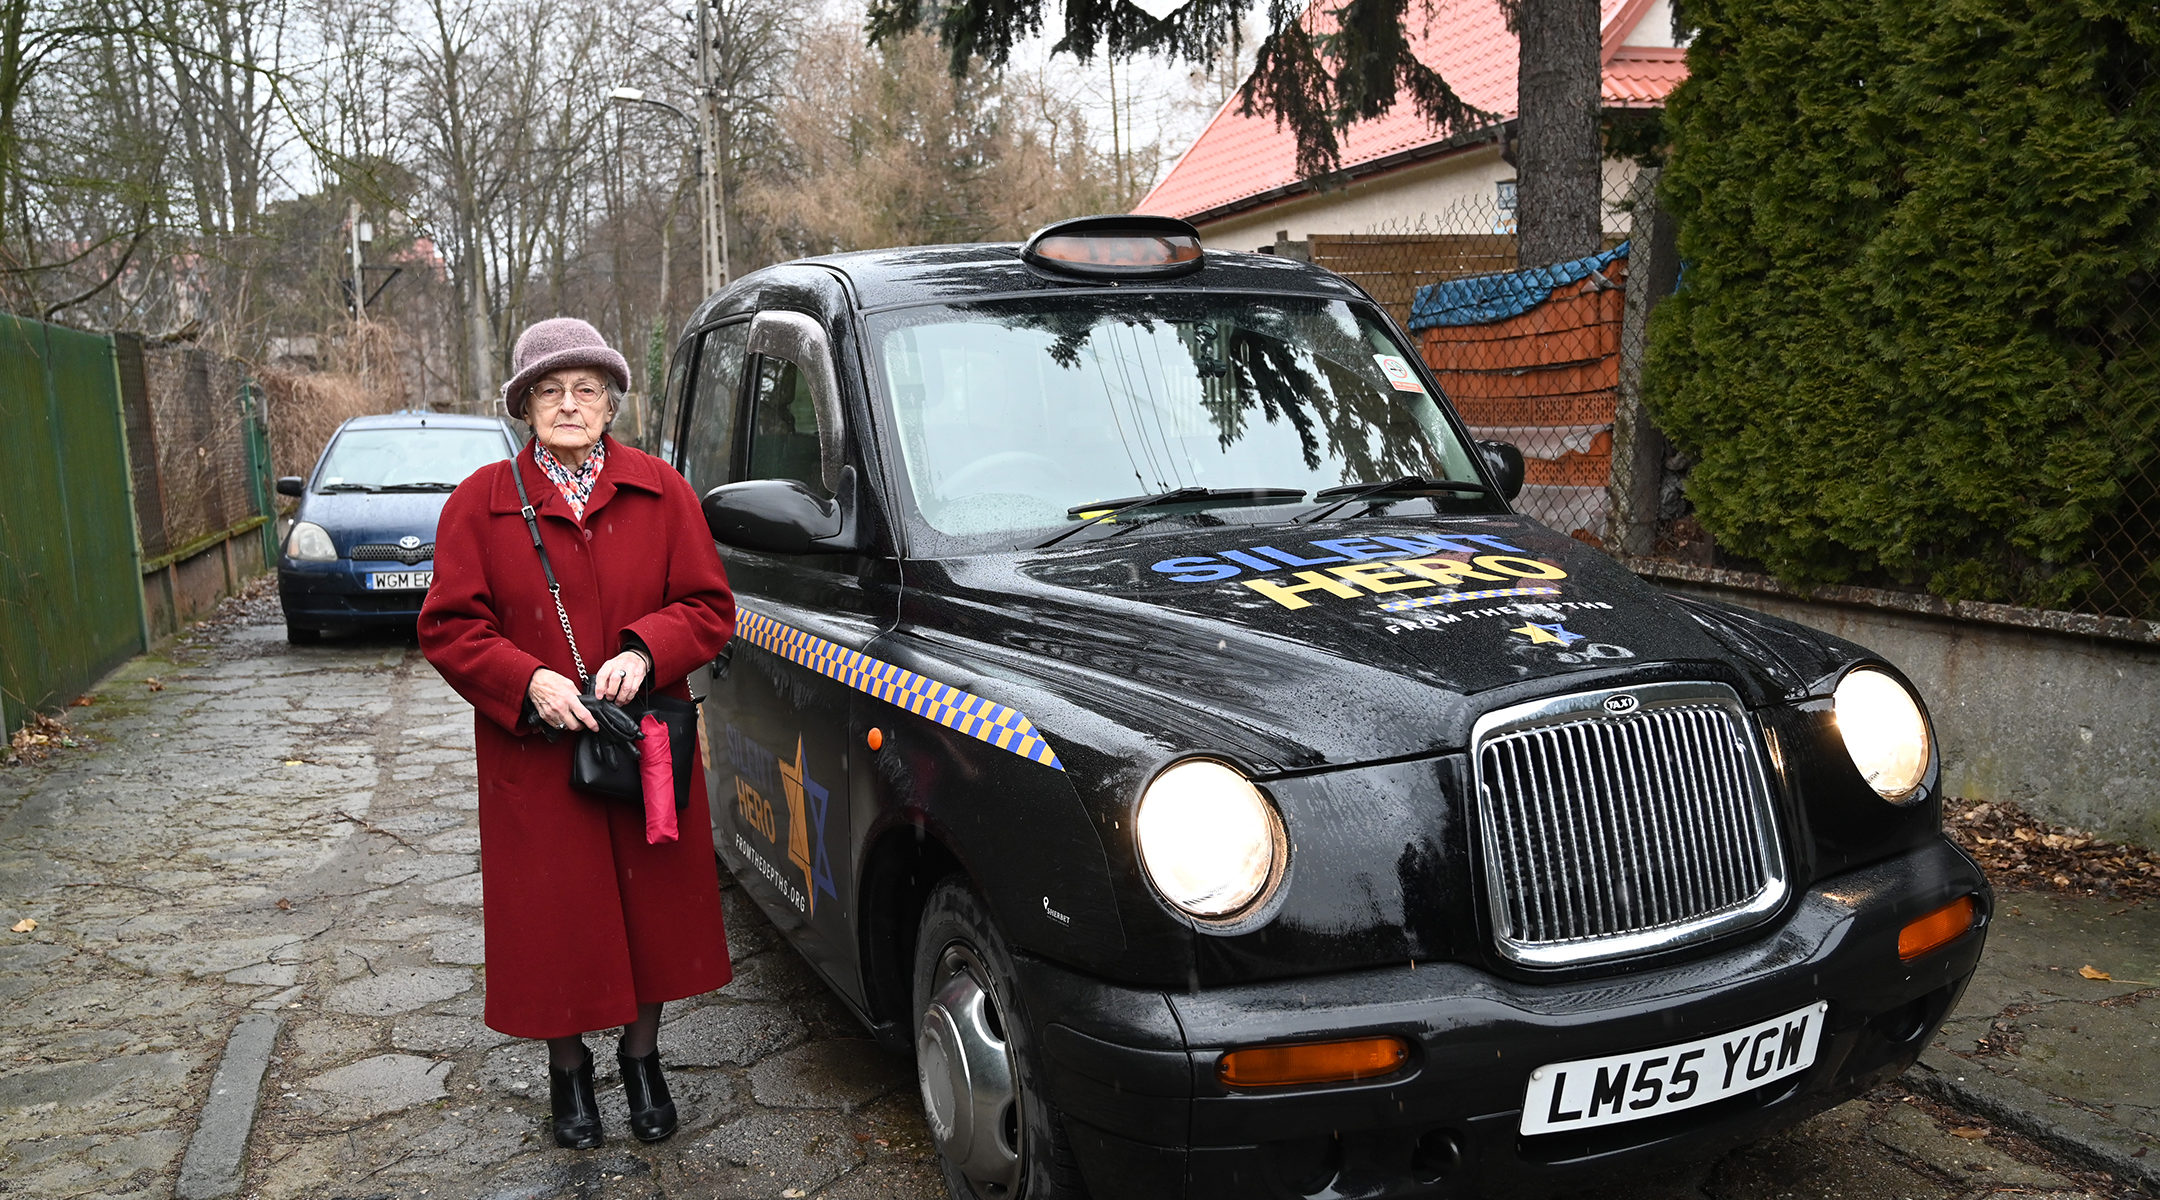 nna Stupnicka-Bando, the 90-year-old president of the Polish Association of the Righteous Among the Nations, entering one of the From the Depths taxis for saviors of Jews in Warsaw, Poland on Jan. 29, 2020. (Cnaan Liphshiz)